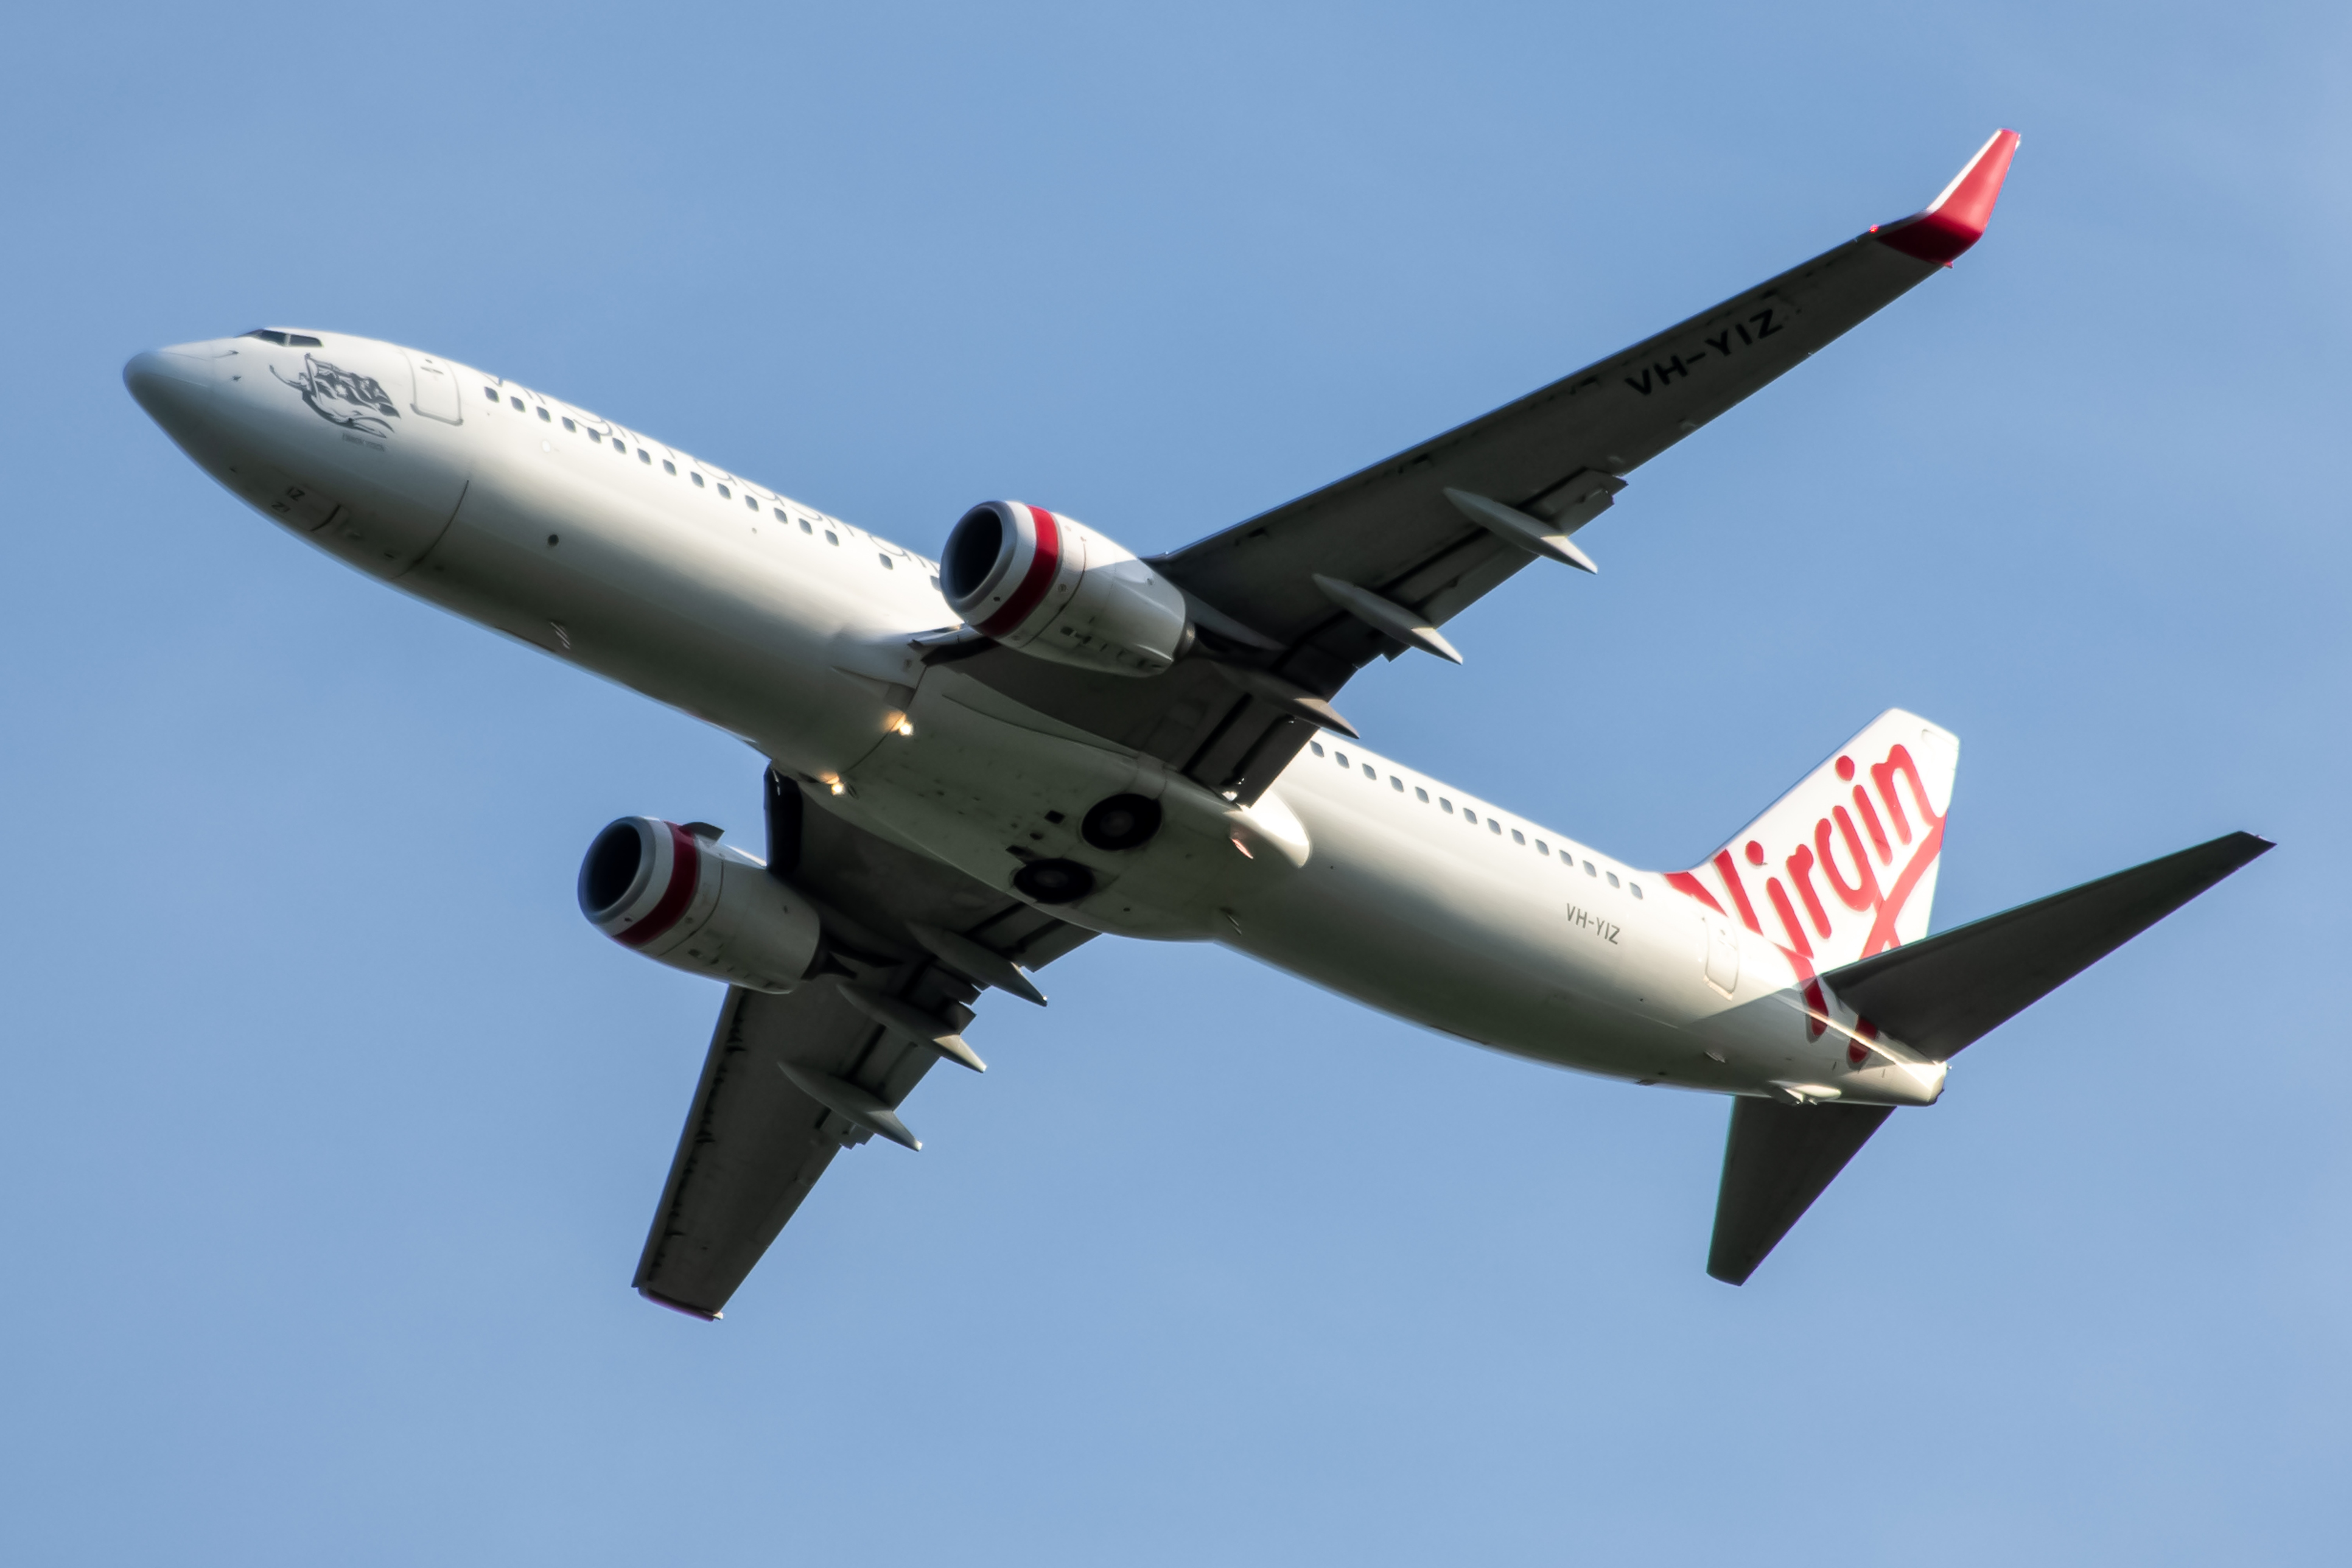 Virgin Australia to withdraw Hong Kong services